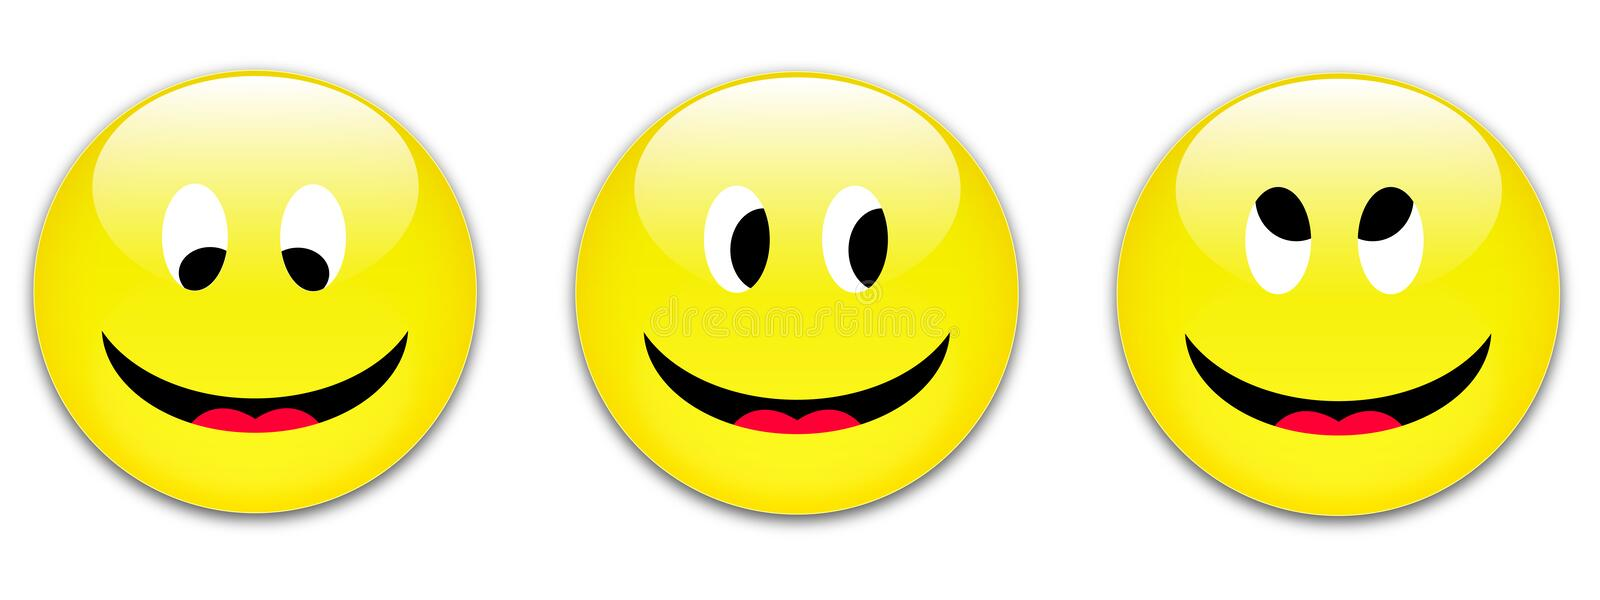 Download Smile Buttons Royalty Free Stock Image - Image: 11076046